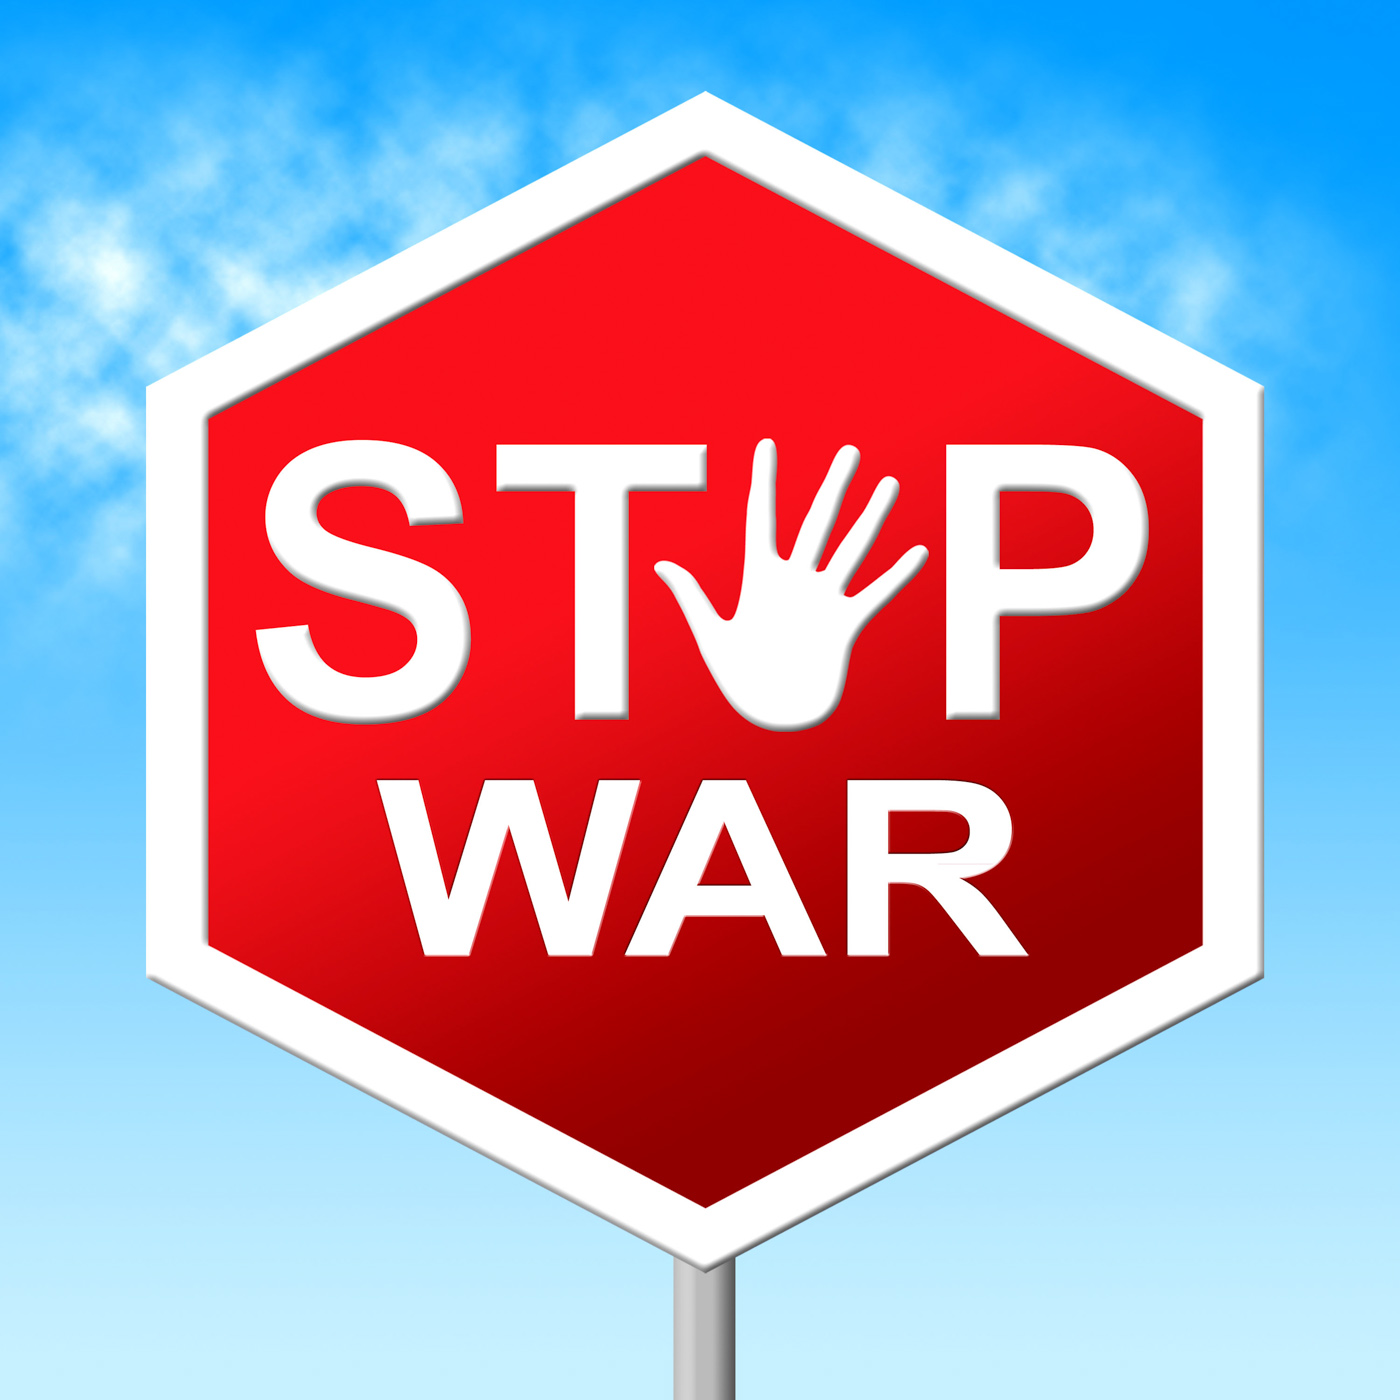 War stop shows warning sign and battles photo